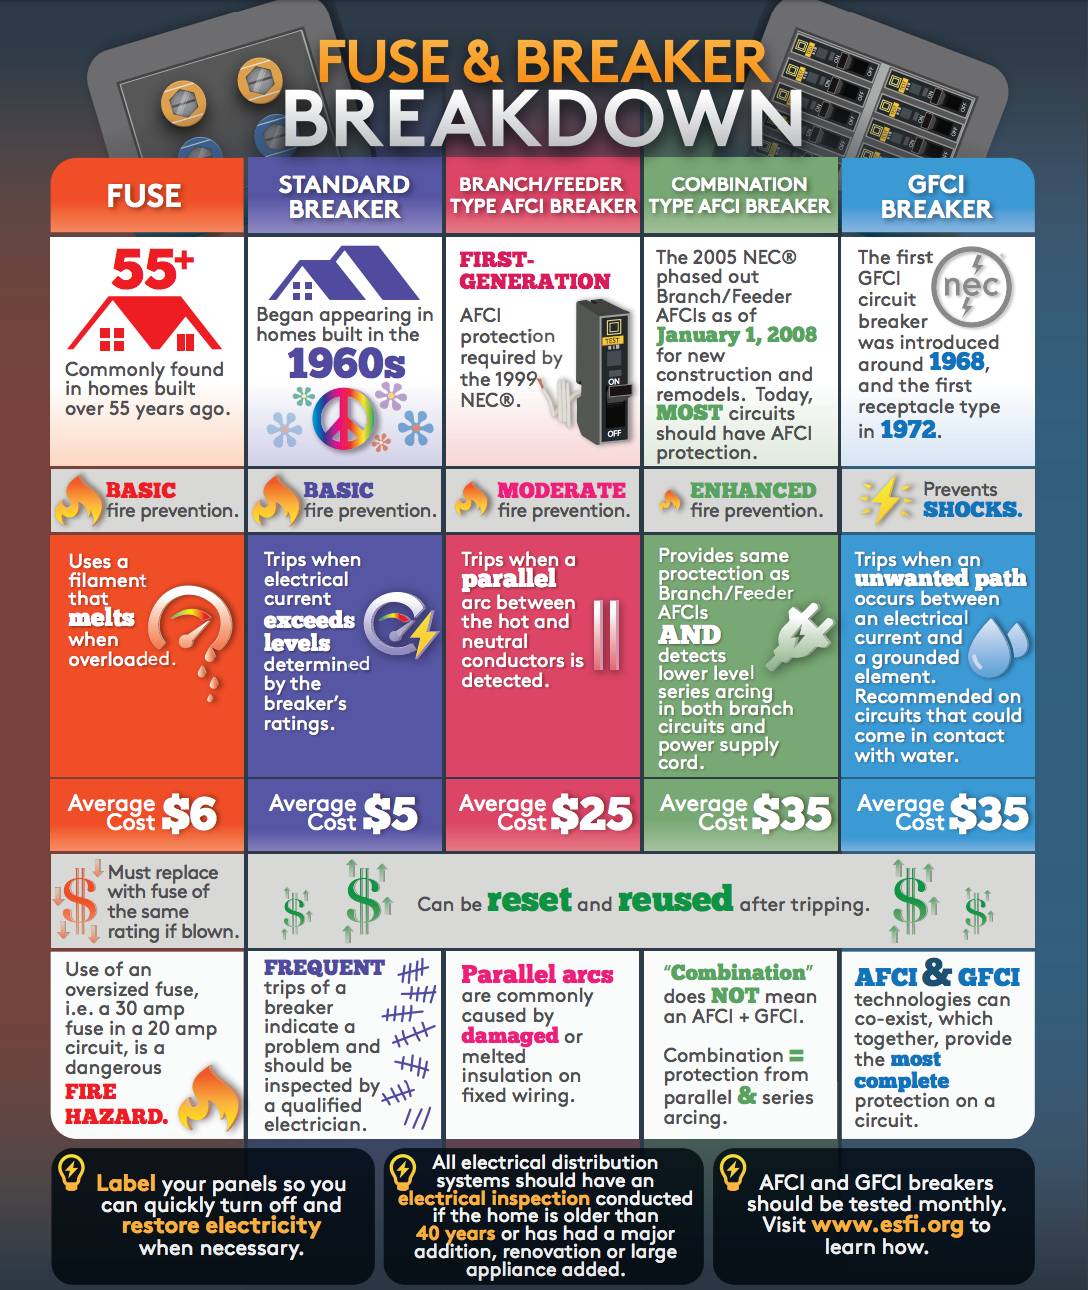 breaker protection differences you want combination series and parallel afci and gfci protection [ 1088 x 1290 Pixel ]